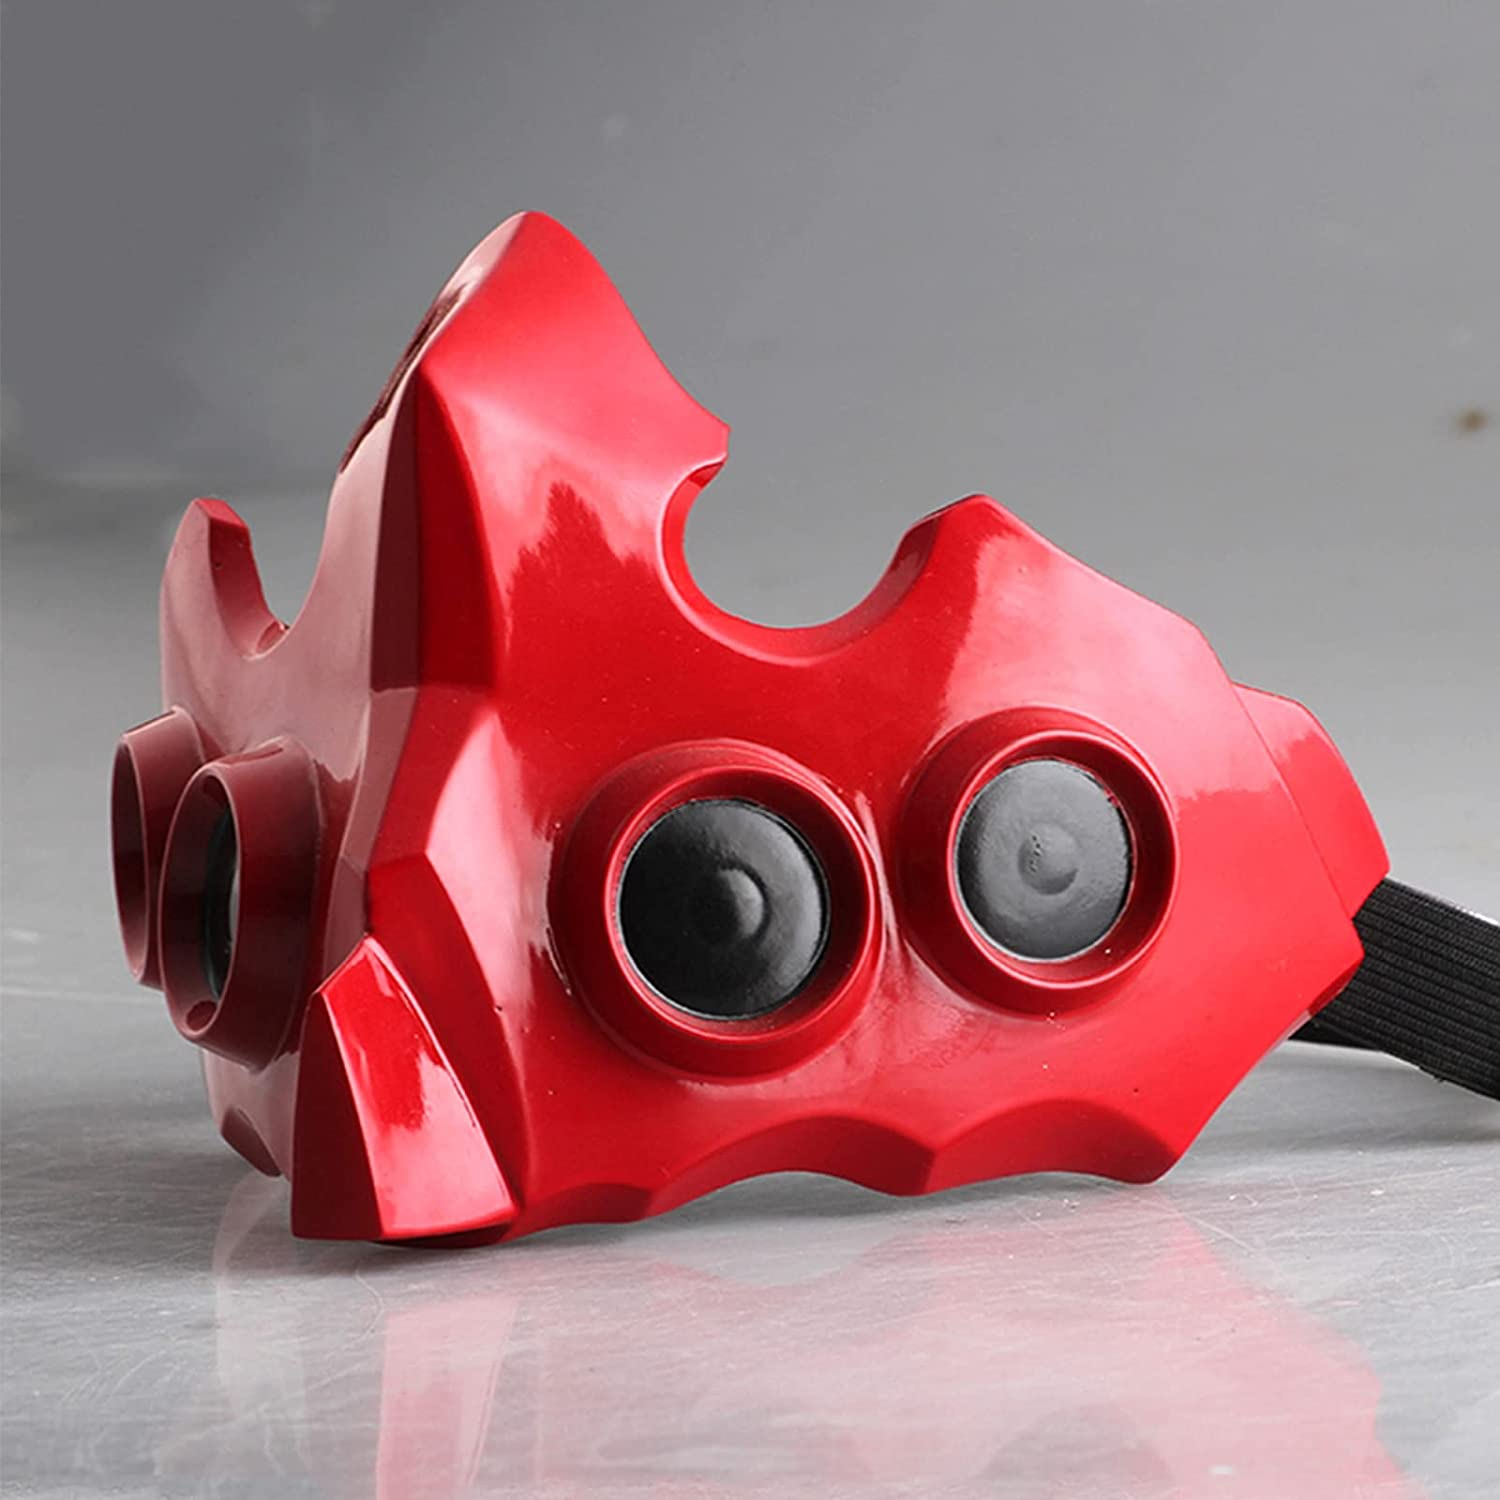 Hewufo Tokyo Ghoul Tatara Red Chicago Chicago Mall Mall Replica 1:1 Cosplay Mask